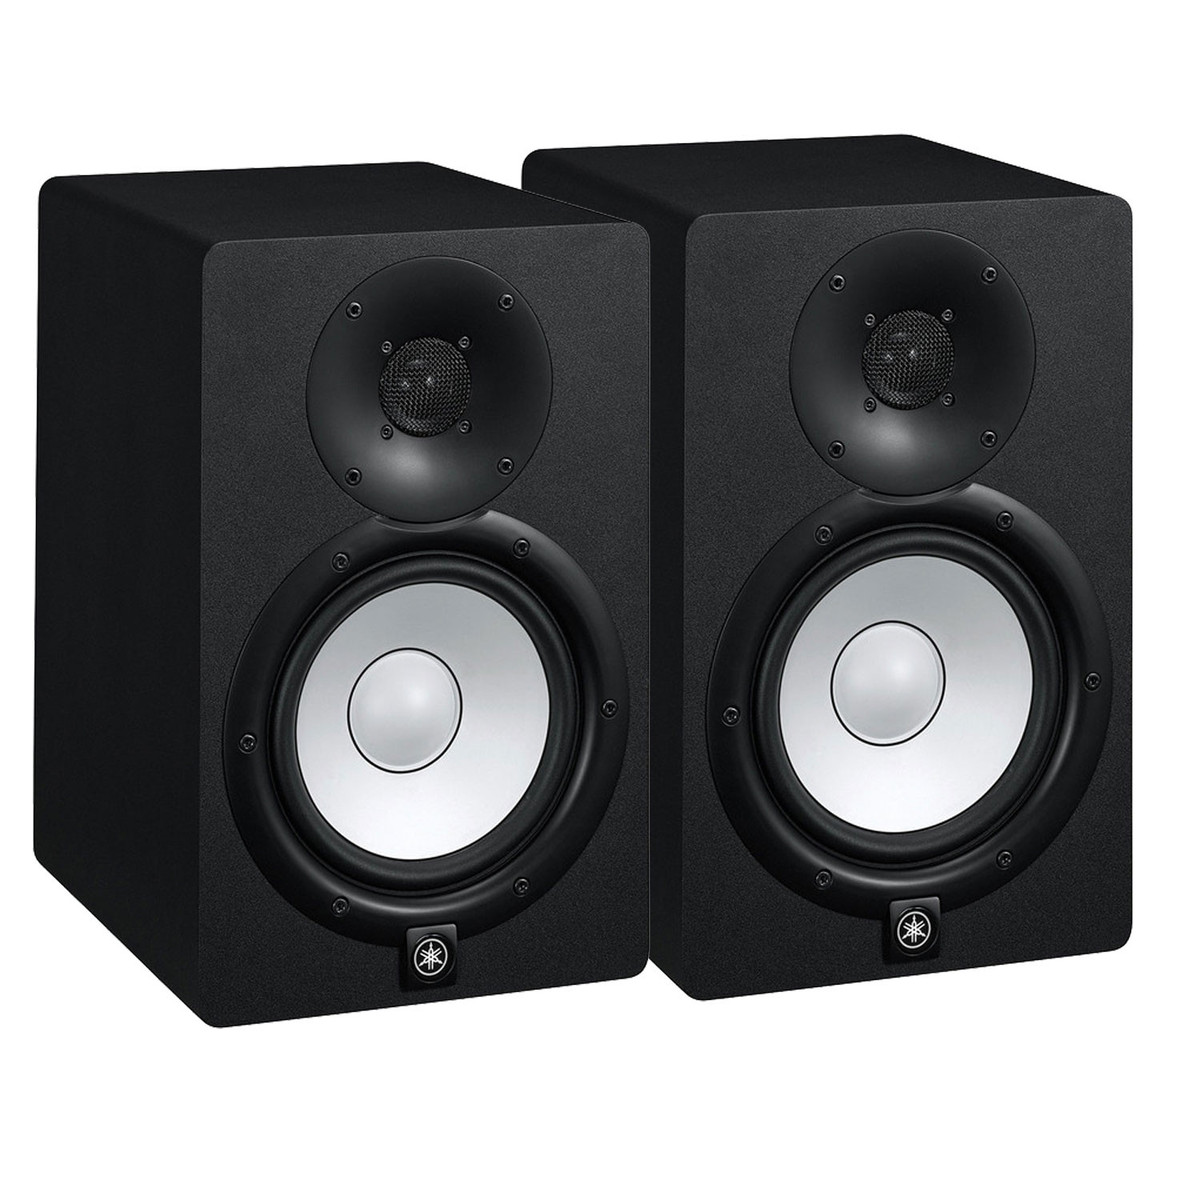 Yamaha hs8 active studio monitors pair with stands and for Studio monitors yamaha